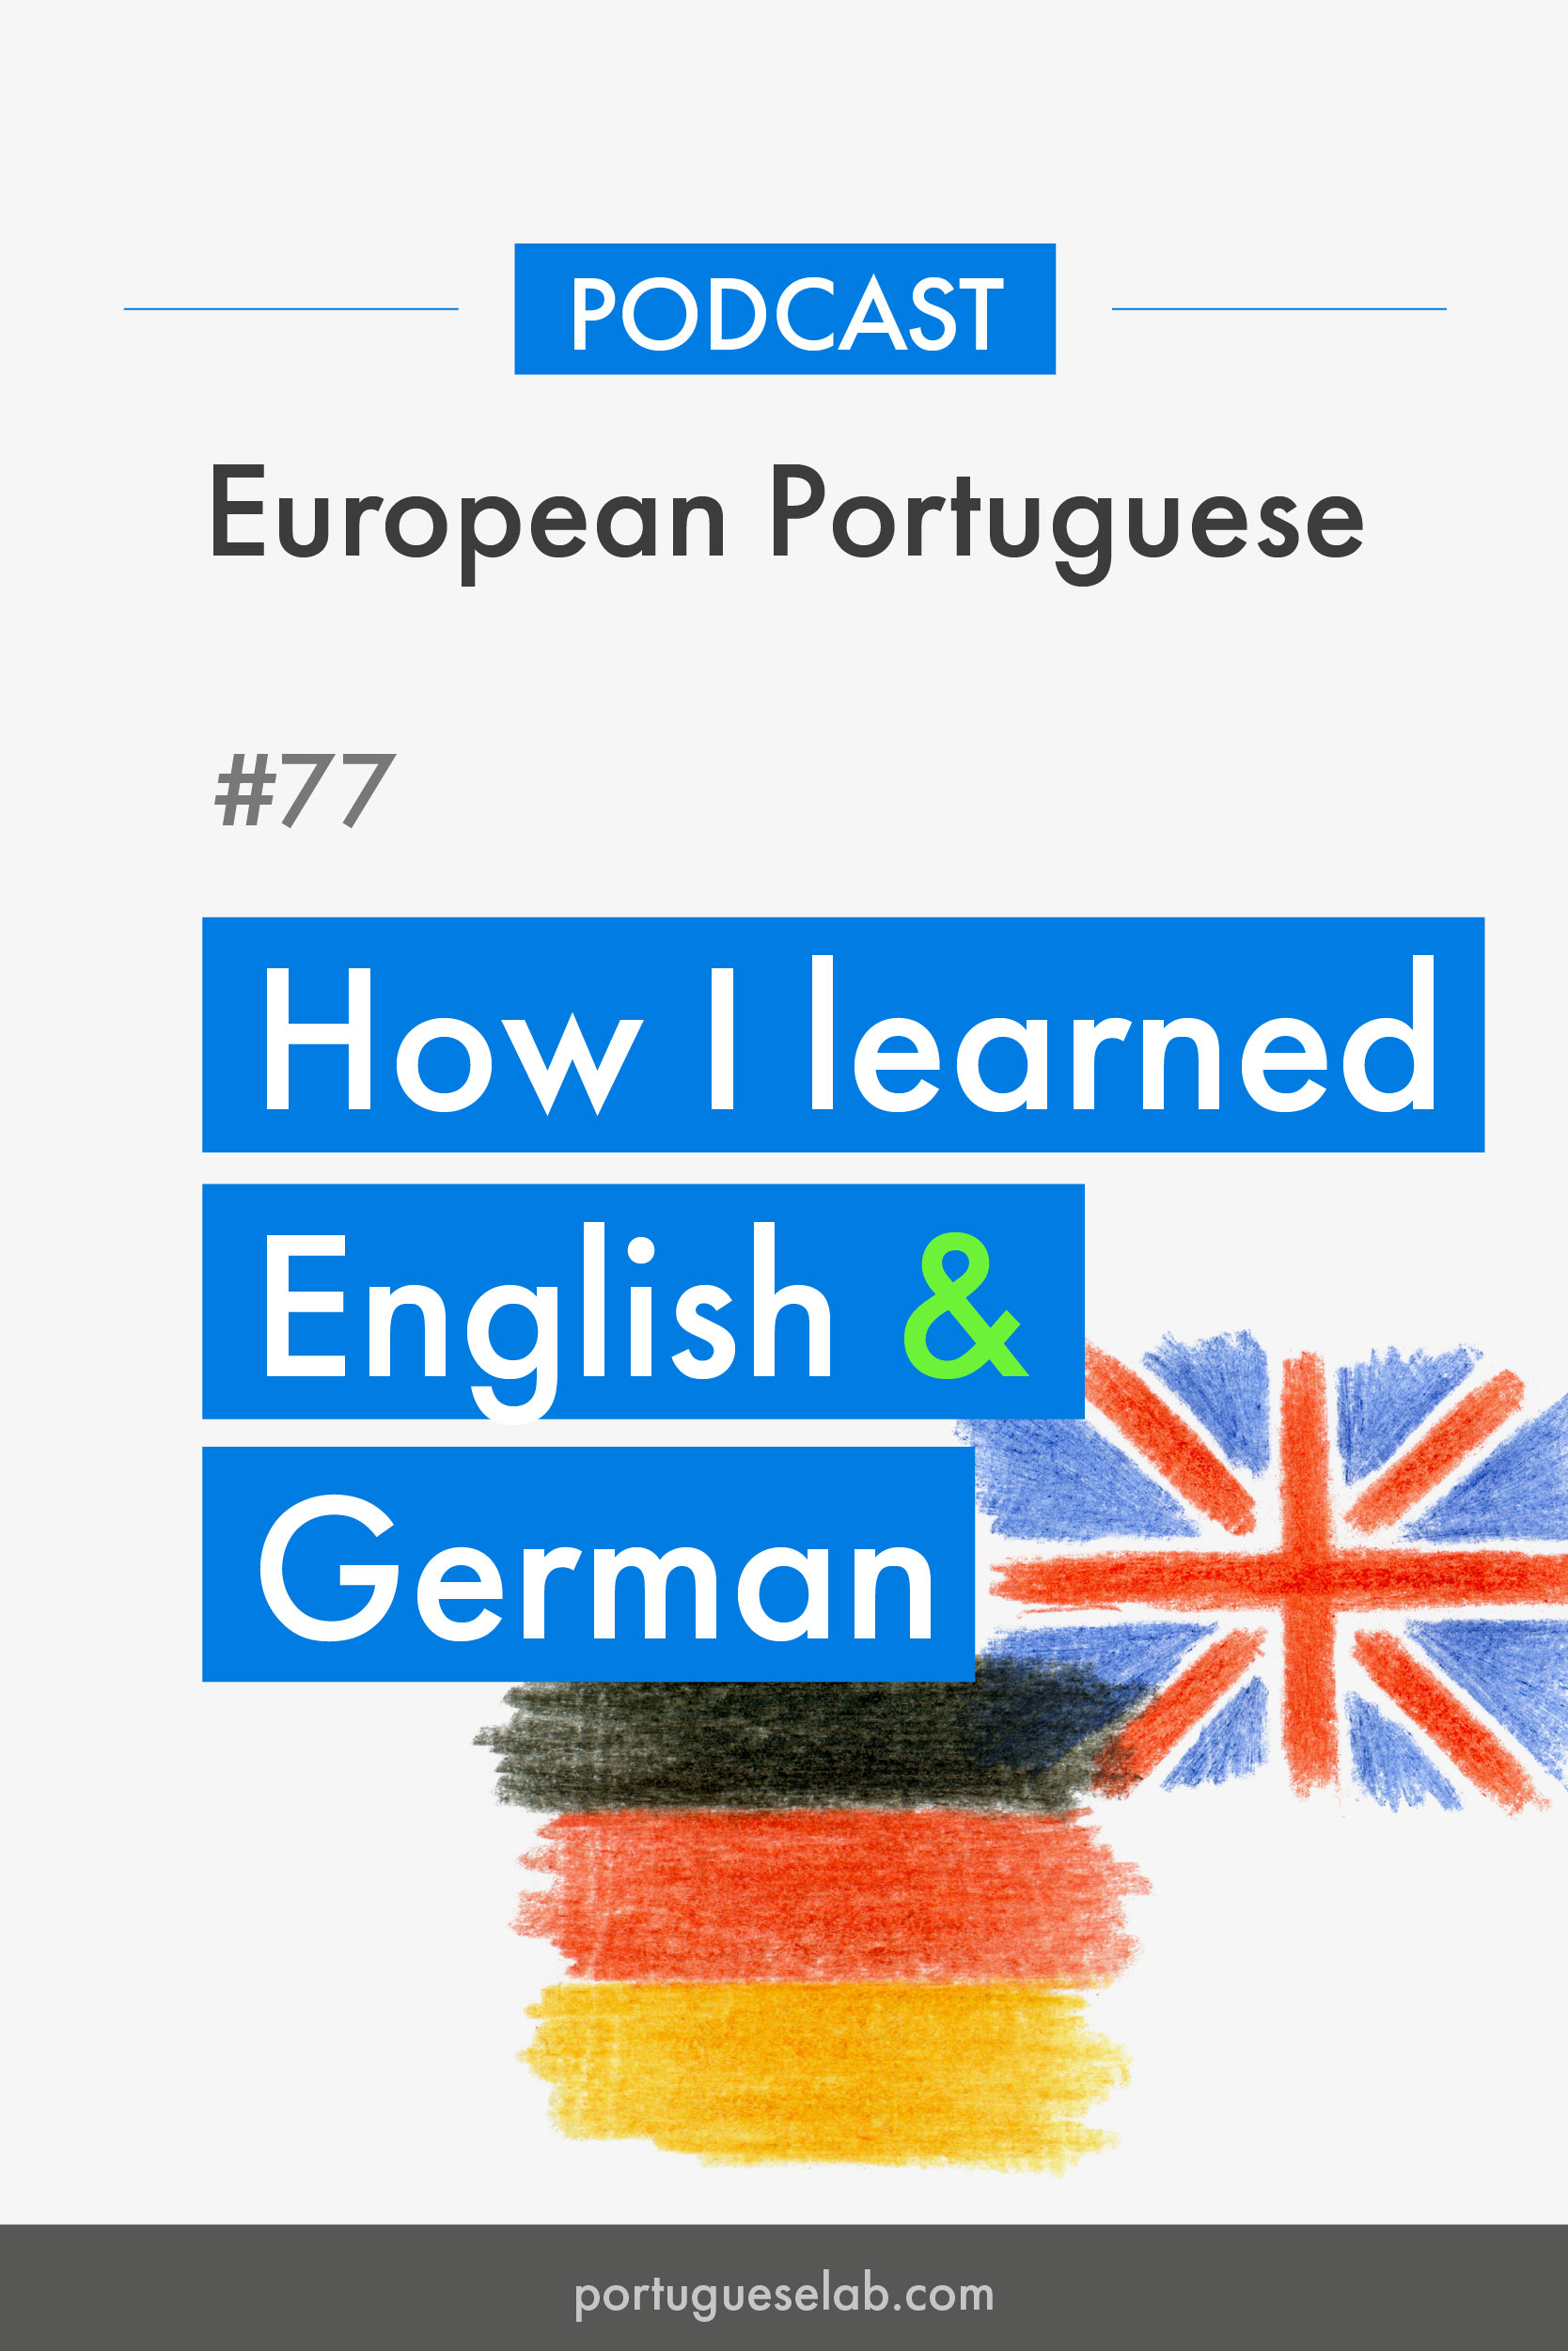 Portuguese-Lab-Podcast-European-Portuguese-77-How-I-learned-English-and-German.jpg